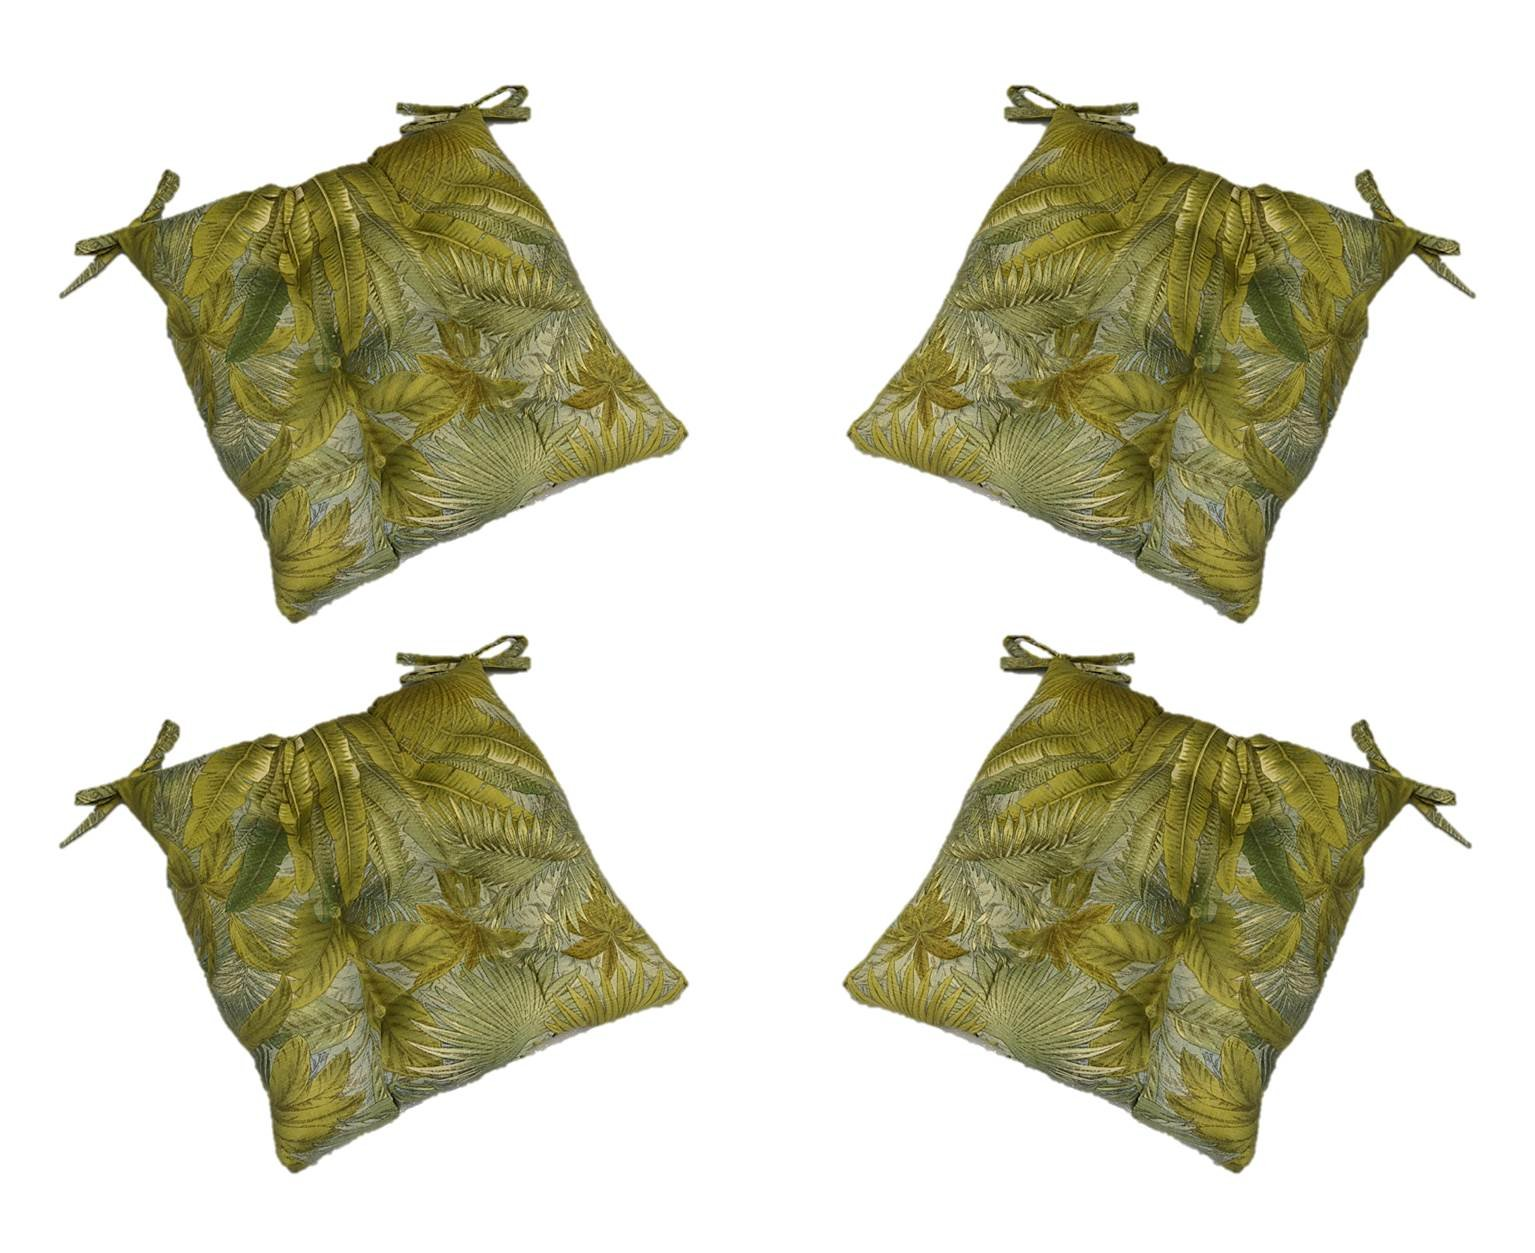 Set of 4 - Indoor / Outdoor Tommy Bahama Blue Green Tan Tropical Palm Leaf Print Universal Tufted Seat Cushions with Ties for Dining Patio Chairs - Choose Size (20'' x 18'')